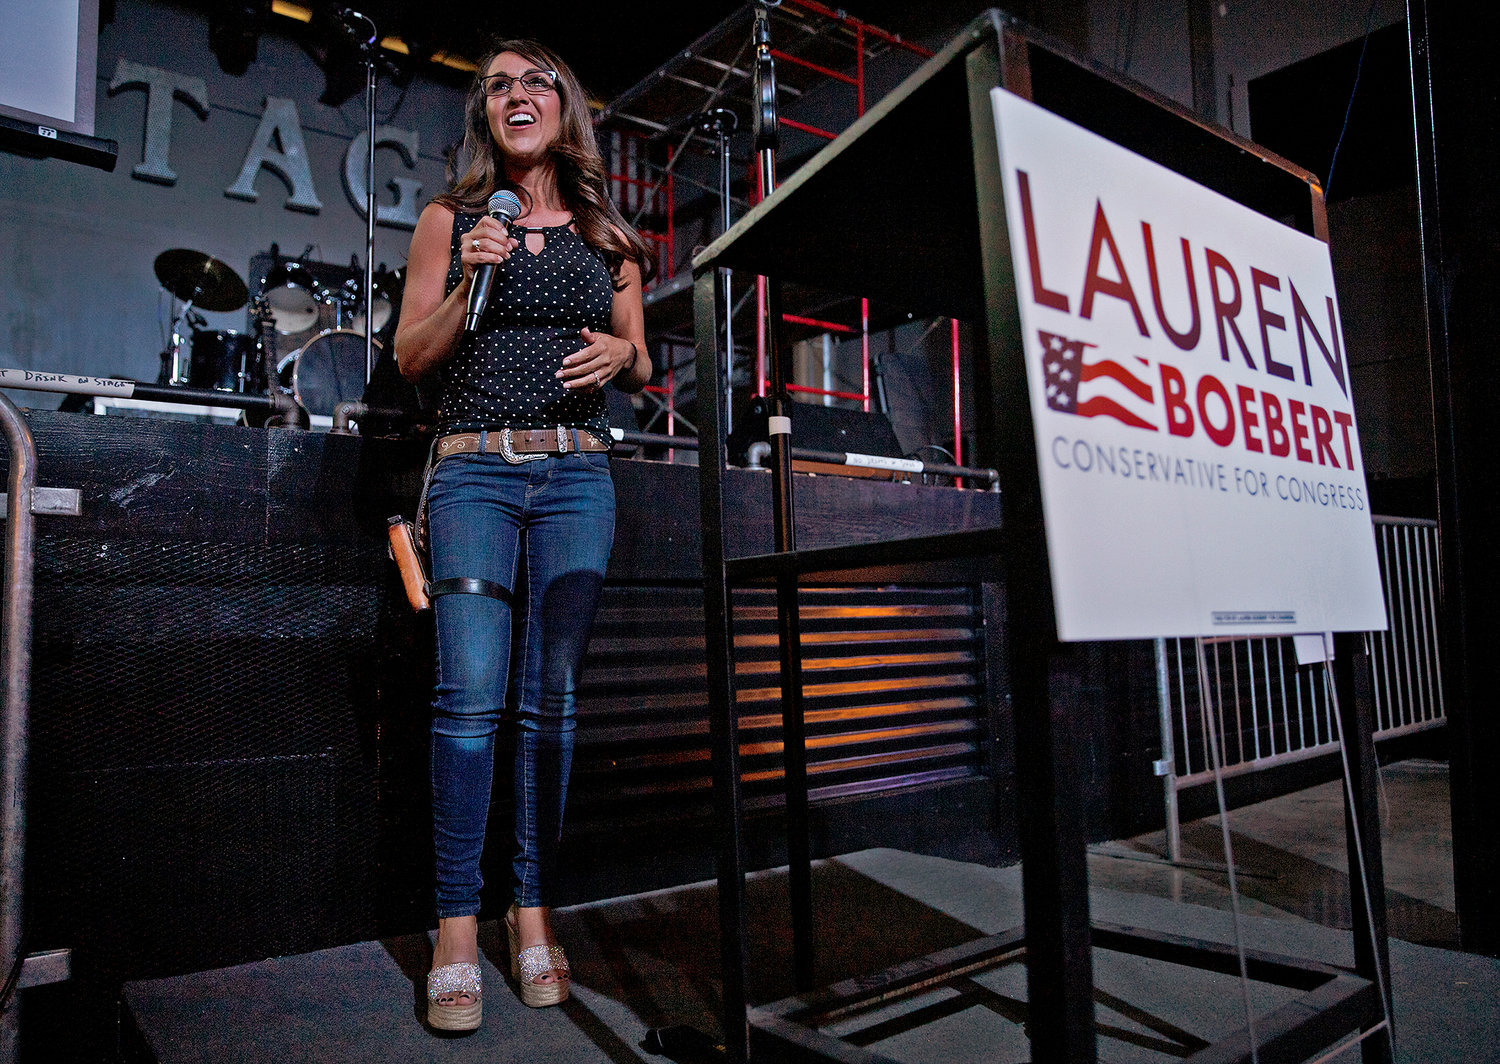 Businesswoman Lauren Boebert speaks during a watch party at Warehouse 25 Sixty Five in Grand Junction, Colo., after polls closed in Colorado's primary election on Tuesday, June 30, 2020. Boebert, a pistol-packing restaurant owner who has expressed support for a far-right conspiracy theory has upset five-term Colorado U.S. Rep. Scott Tipton. Lauren Boebert is an ardent defender of gun rights and border wall supporter. She will run in November's general election against Diane Mitsch Bush, who won the Democratic nomination on Tuesday.  (McKenzie Lange/Grand Junction Sentinel via AP, File)